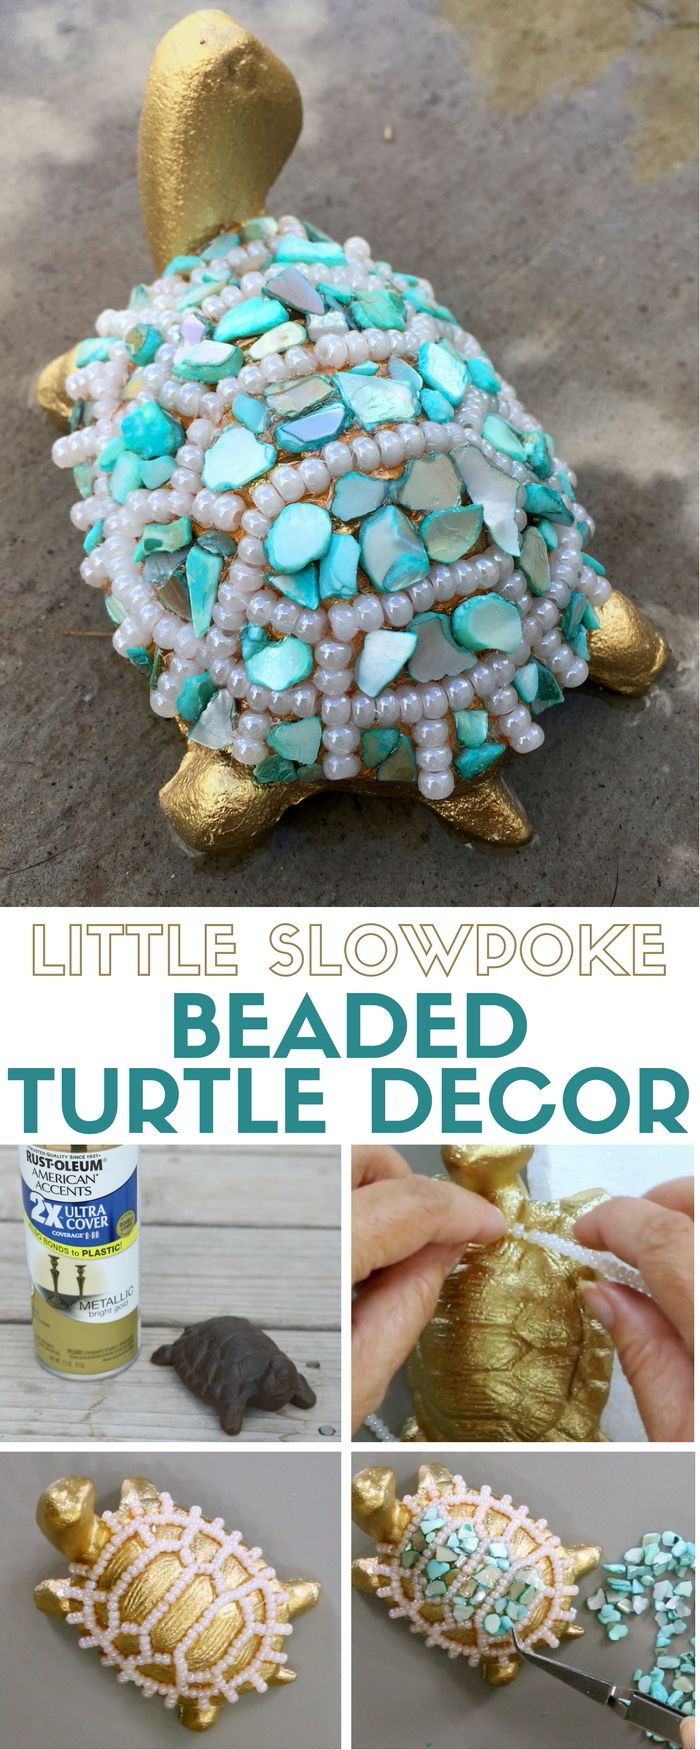 A Diffe Look To The Slowpoke Turtle Decor Craft Kit By Apostrophe S An Easy Diy Tutorial Idea That Makes Great Handmade Gift Or Home